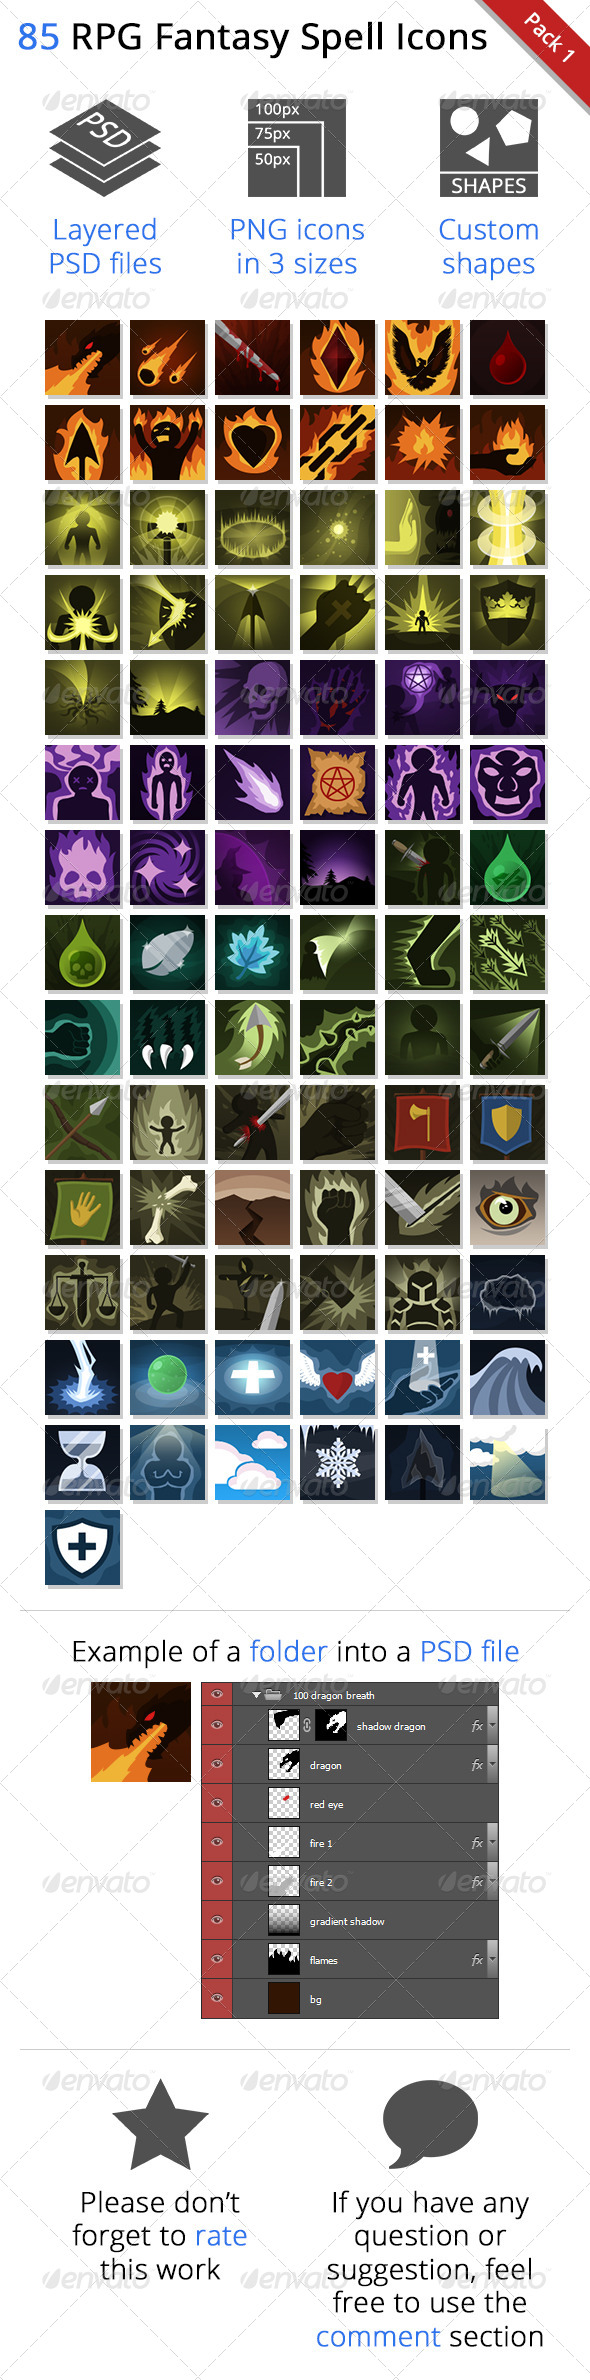 85 RPG Fantasy Spells Icons - Miscellaneous Game Assets